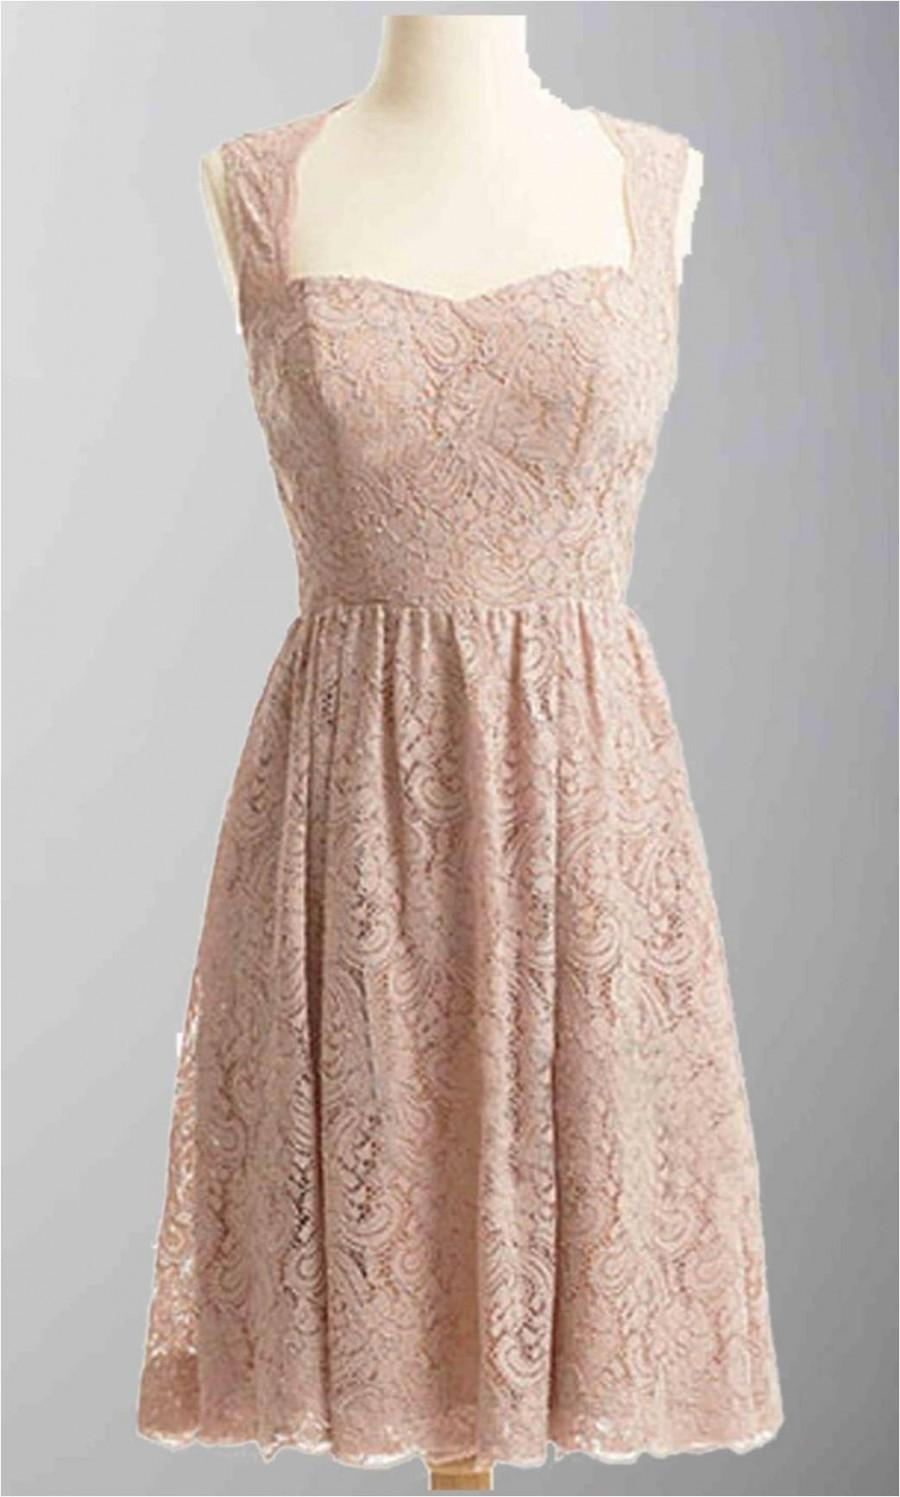 Wedding - Cut Out Square Sexy Cheap Short Lace Bridesmaid Dresses KSP297 [KSP297] - £87.00 : Cheap Prom Dresses Uk, Bridesmaid Dresses, 2014 Prom & Evening Dresses, Look for cheap elegant prom dresses 2014, cocktail gowns, or dresses for special occasions? kissprom